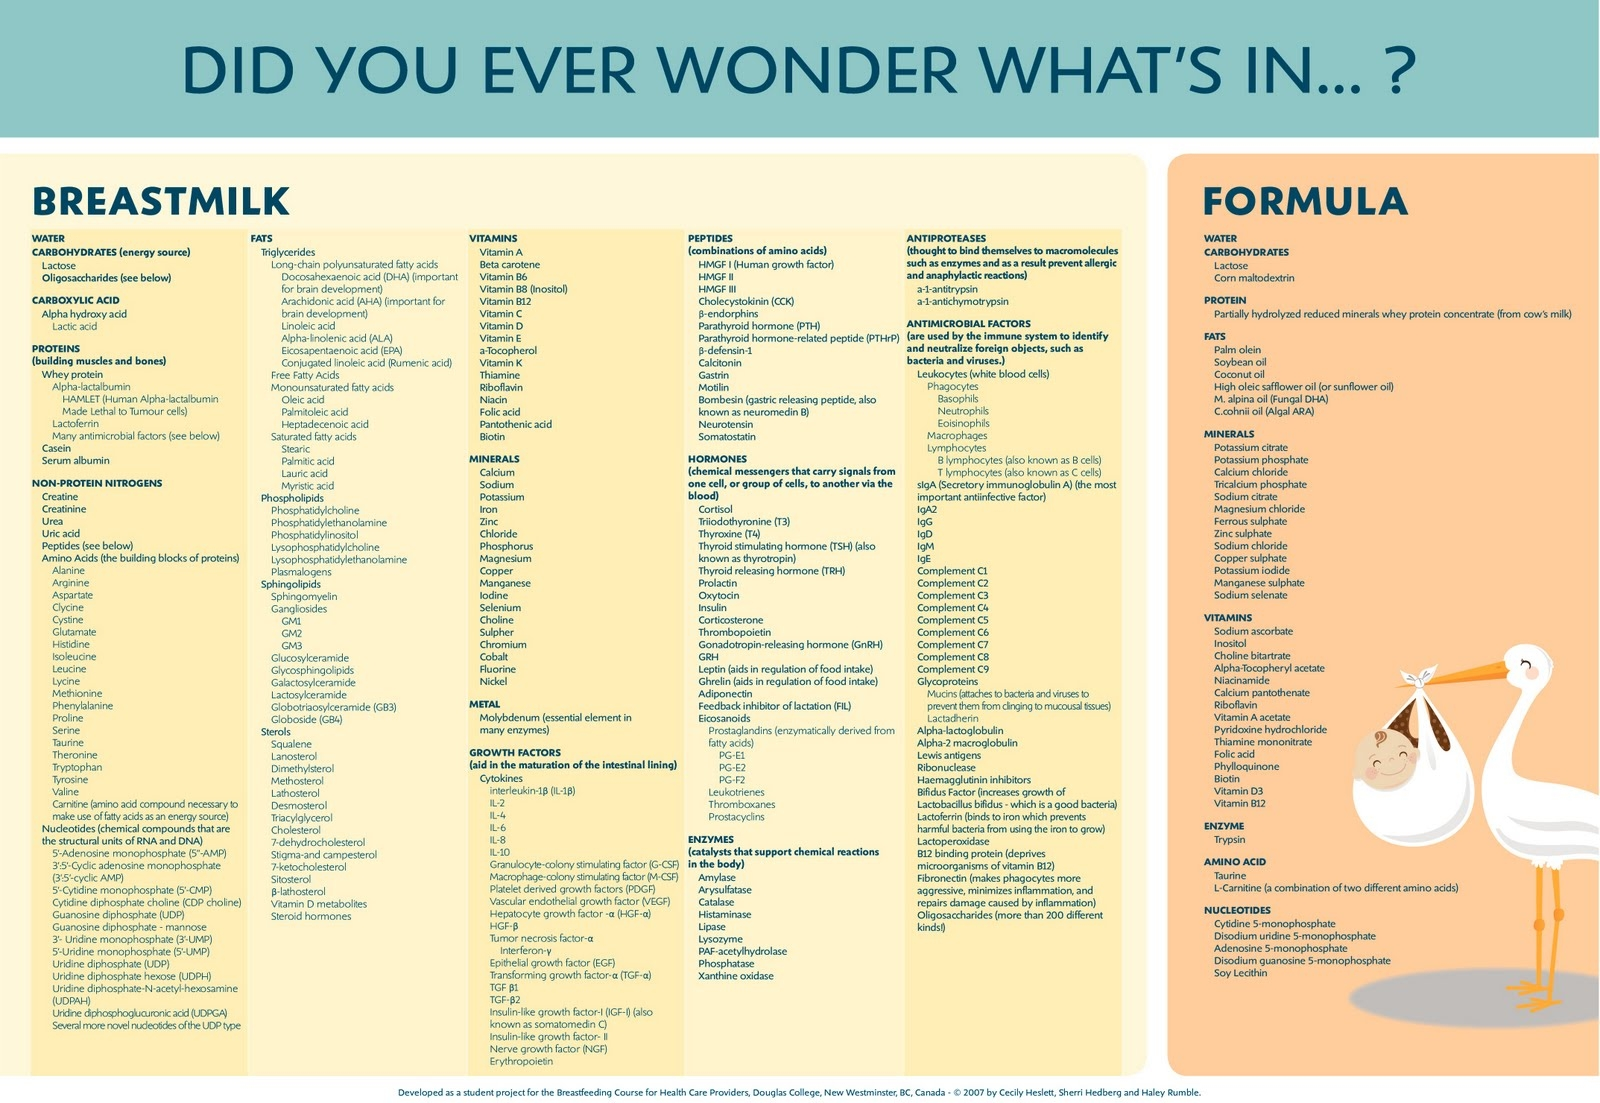 If formula was as good and the manufacturers wanted us to believe these lists wouldn't be so different.